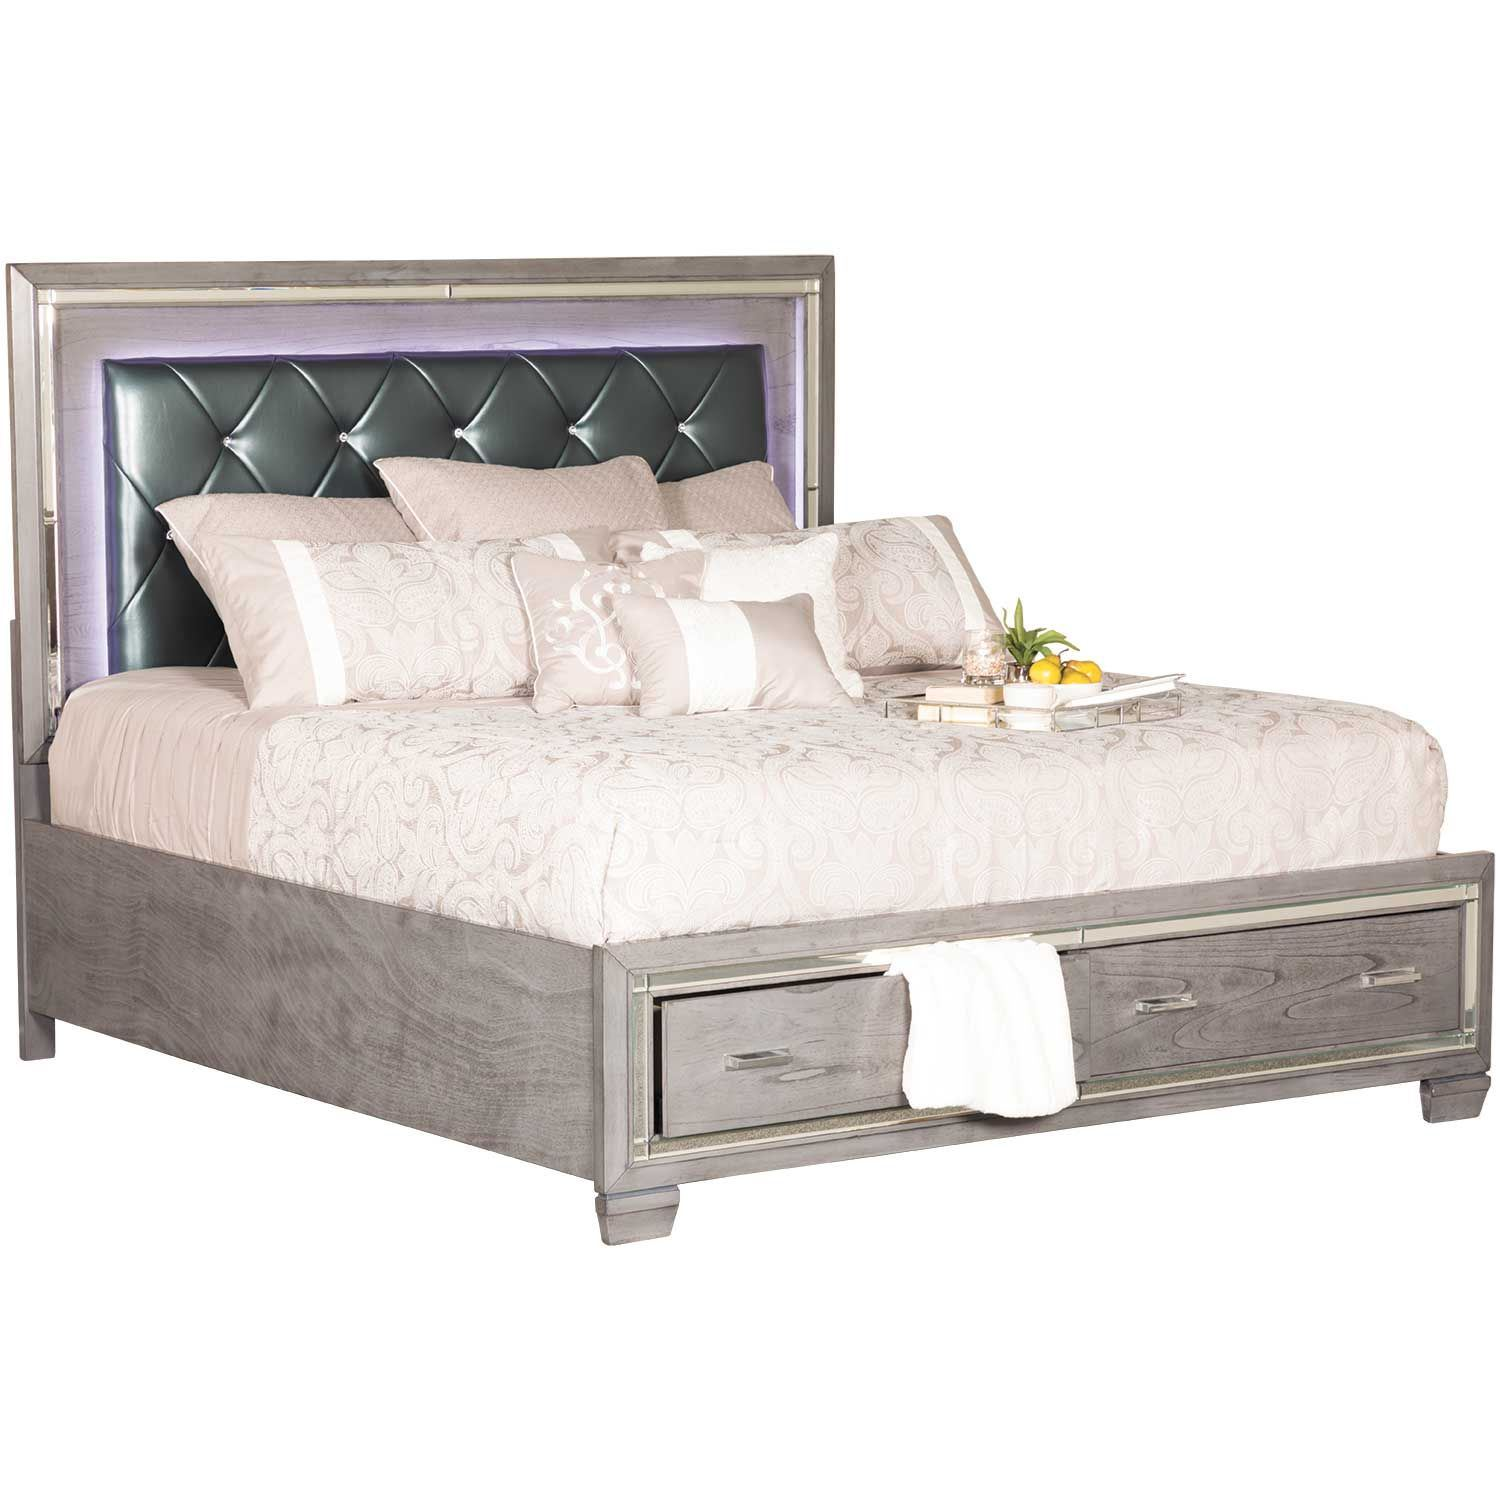 Picture of Titanium King Storage Bed